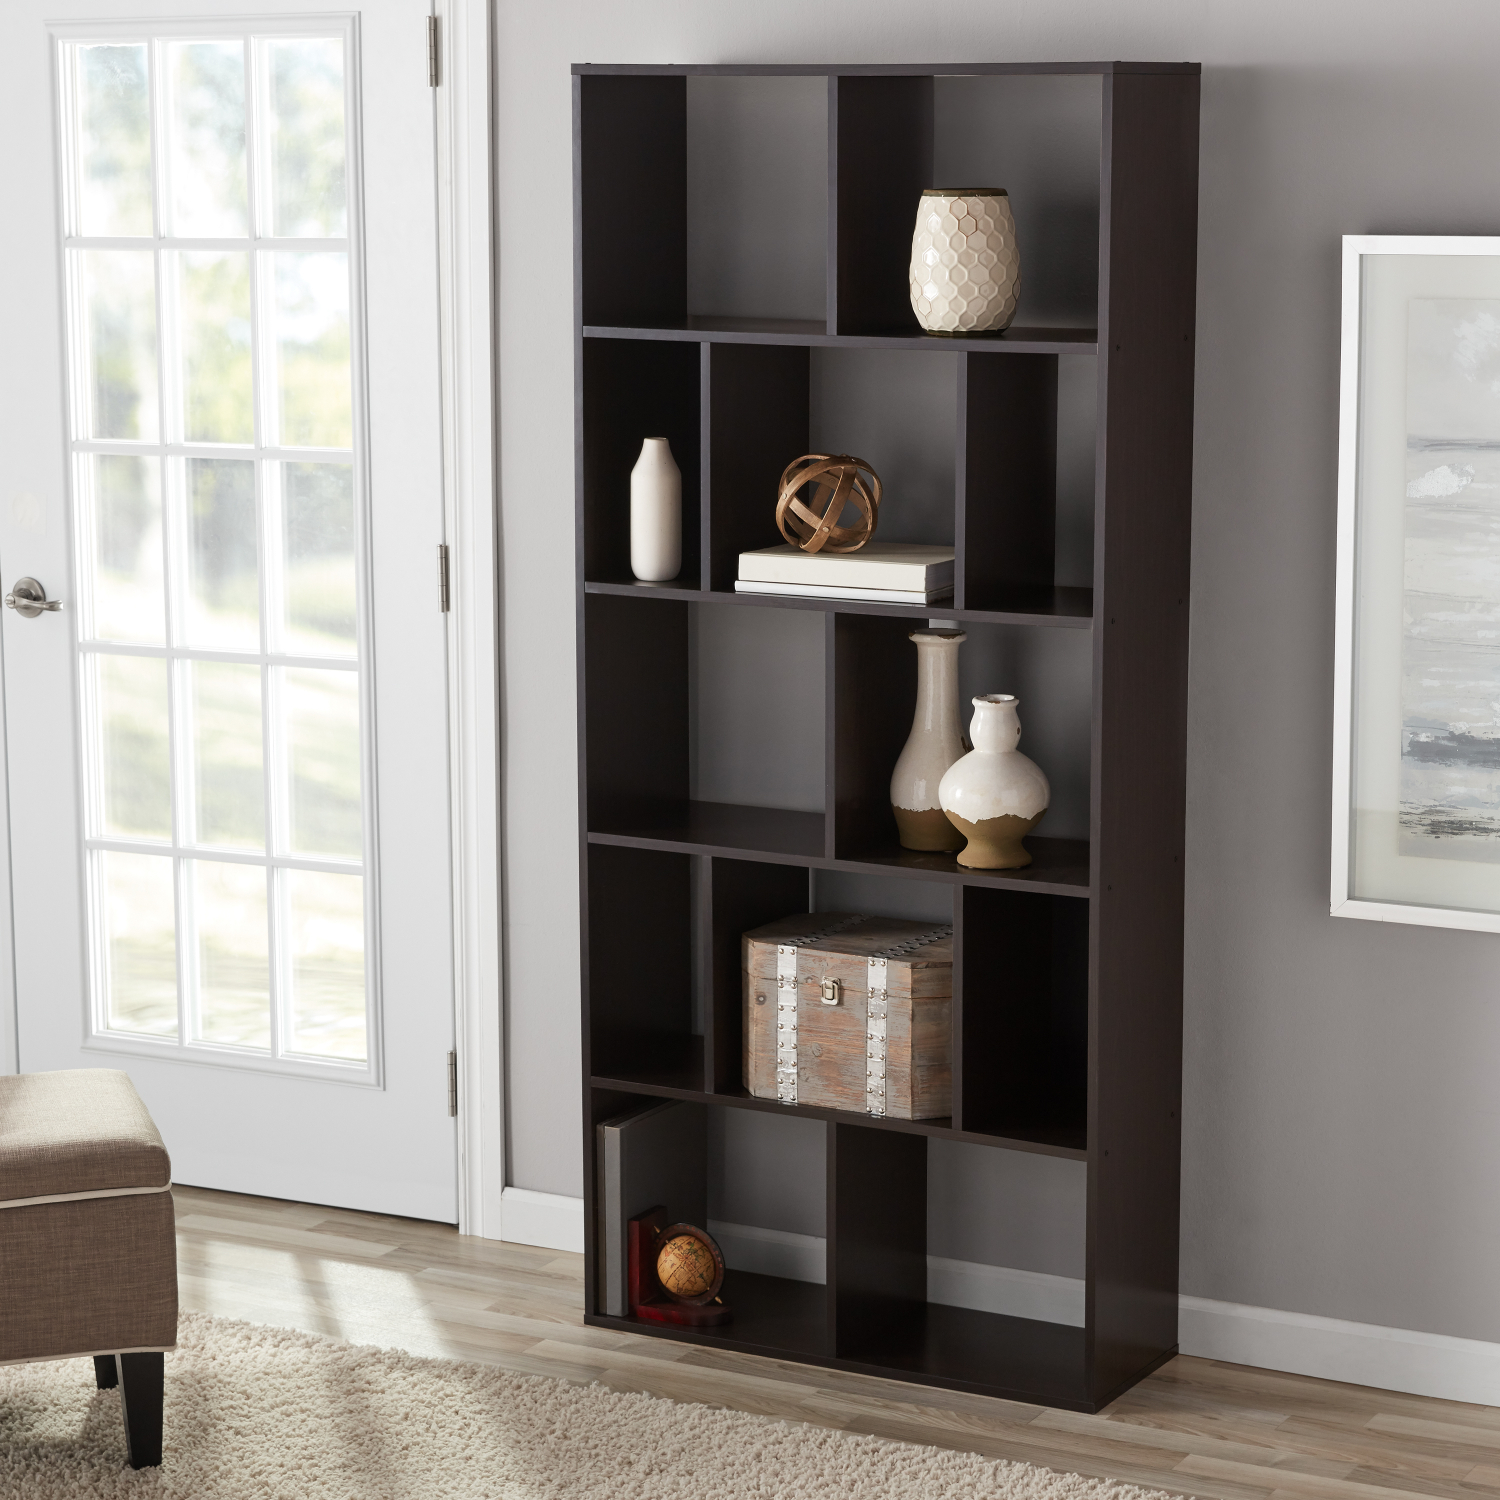 Cube Bookcase Storage Shelves Display Stand Book Shelves ...